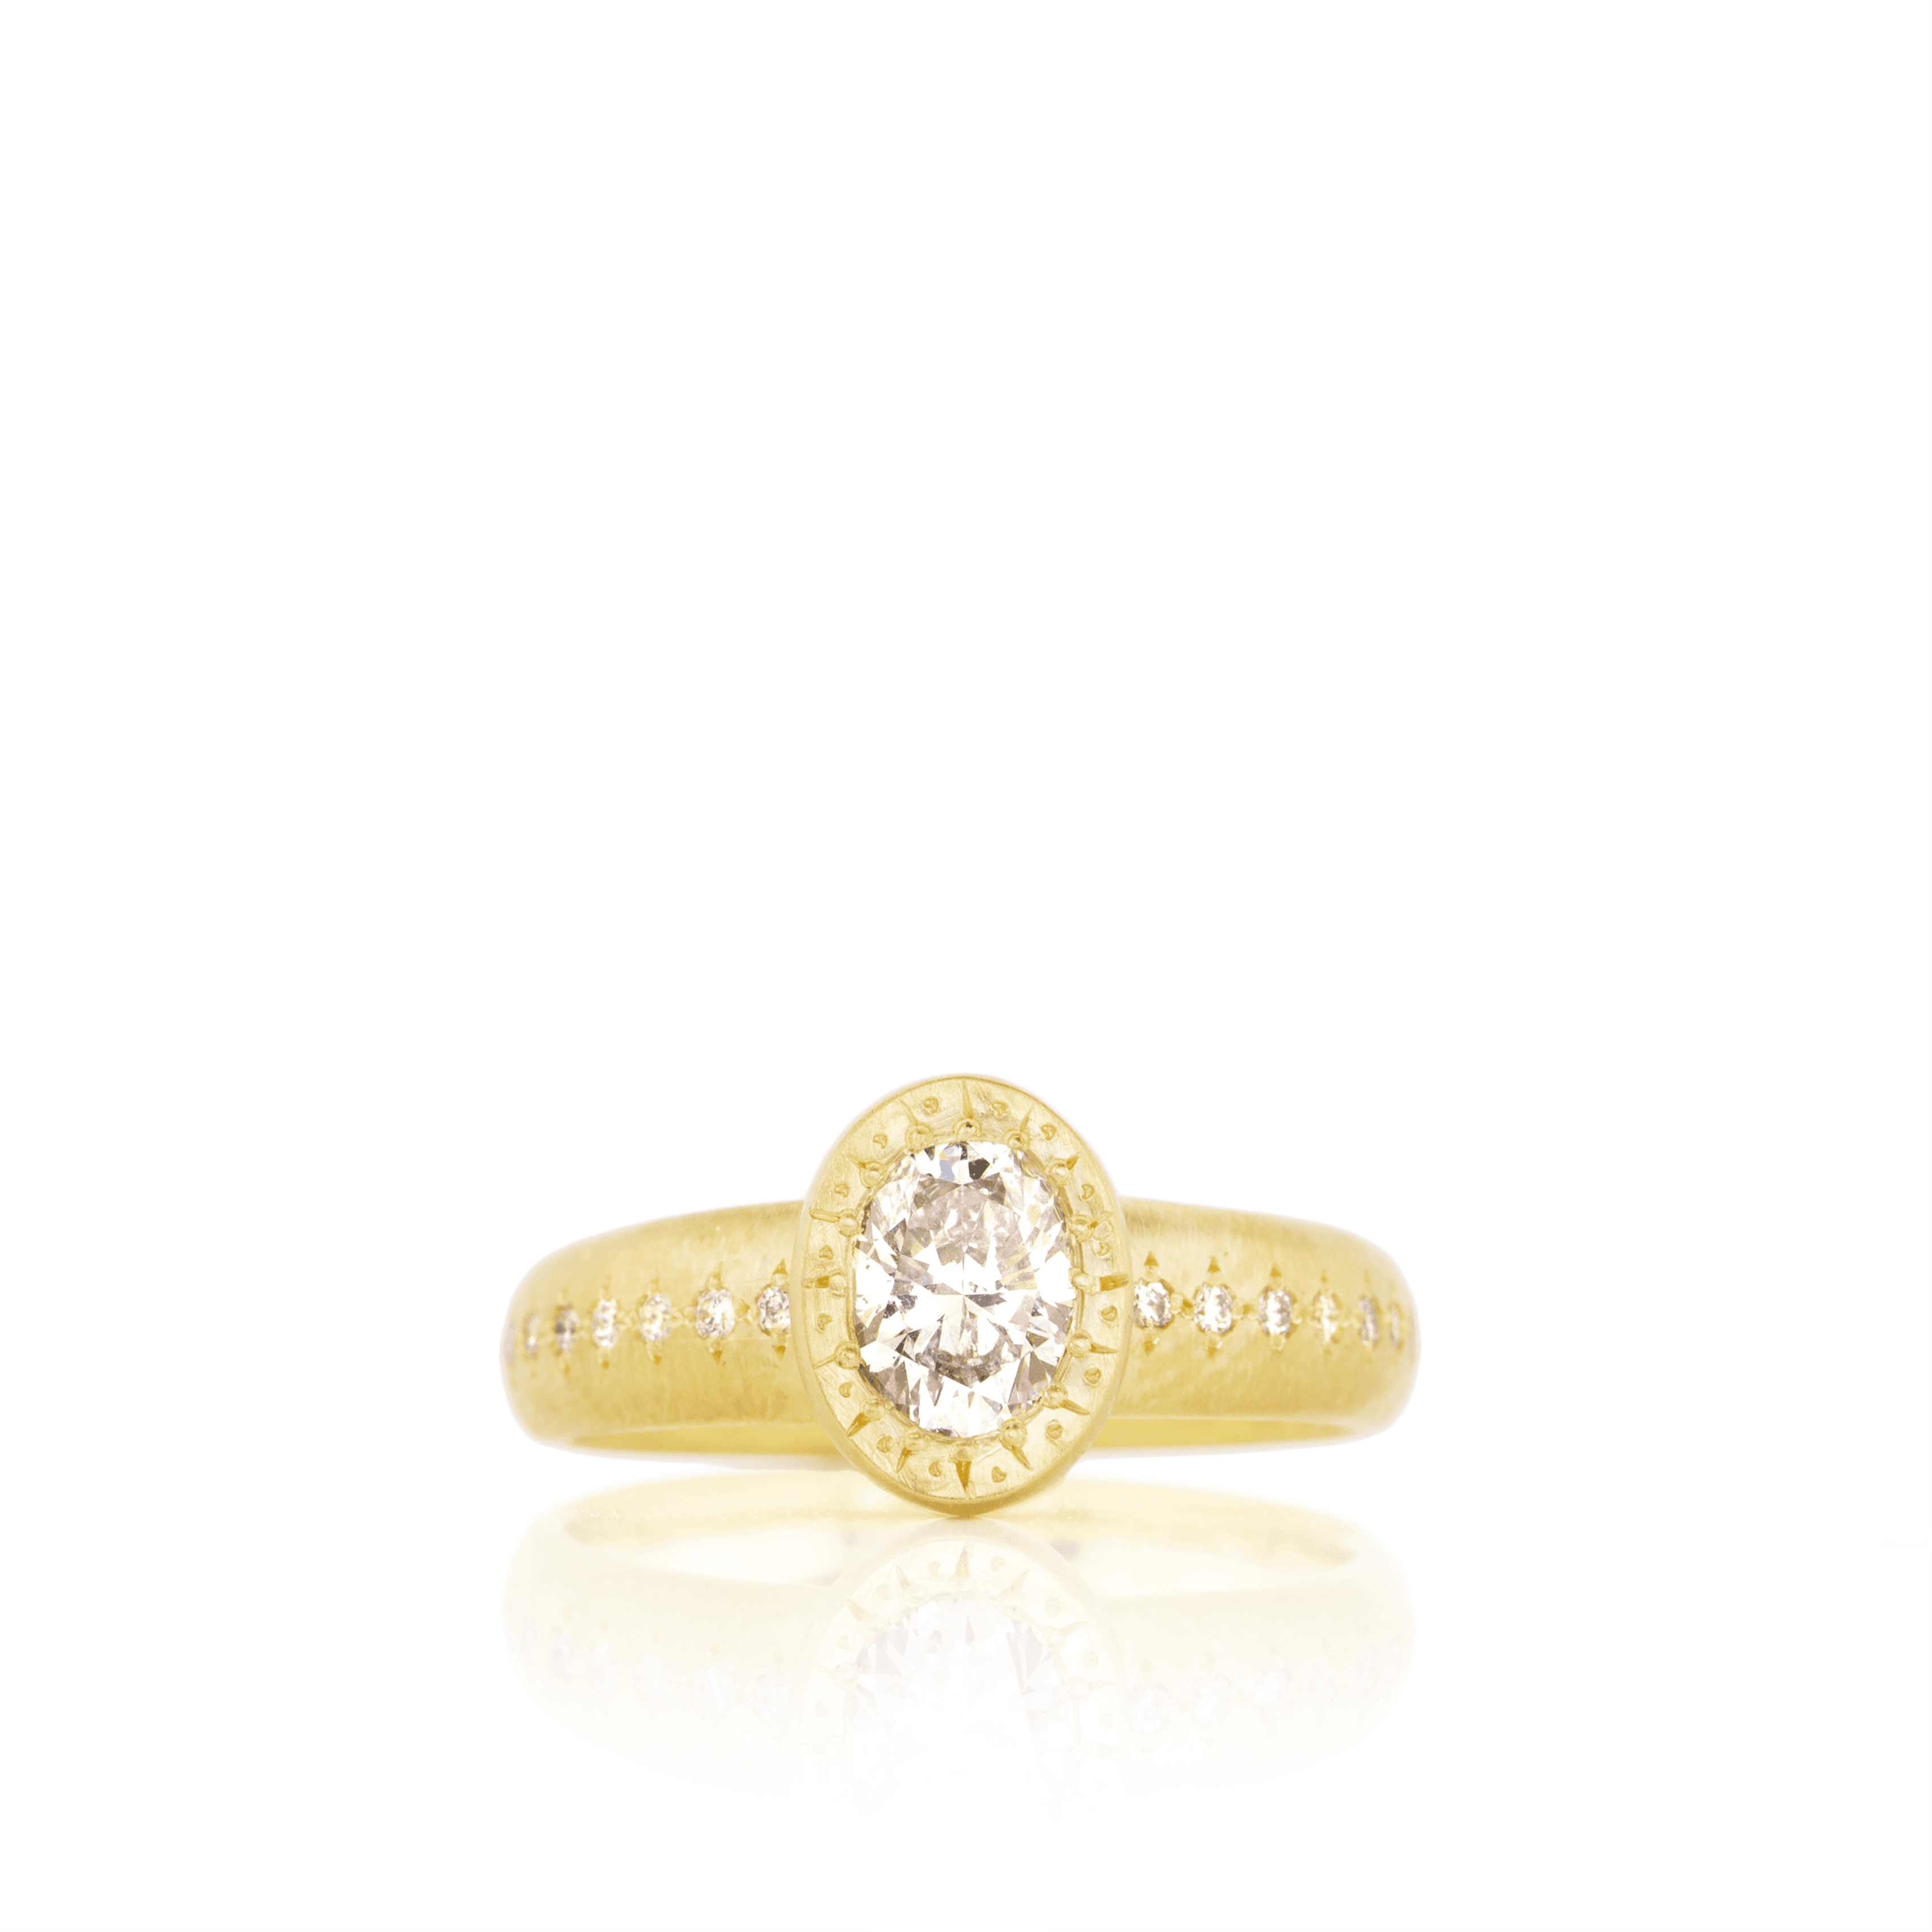 Gold Diamond Ring - Adel Chefridi - Mansoor Jewelers